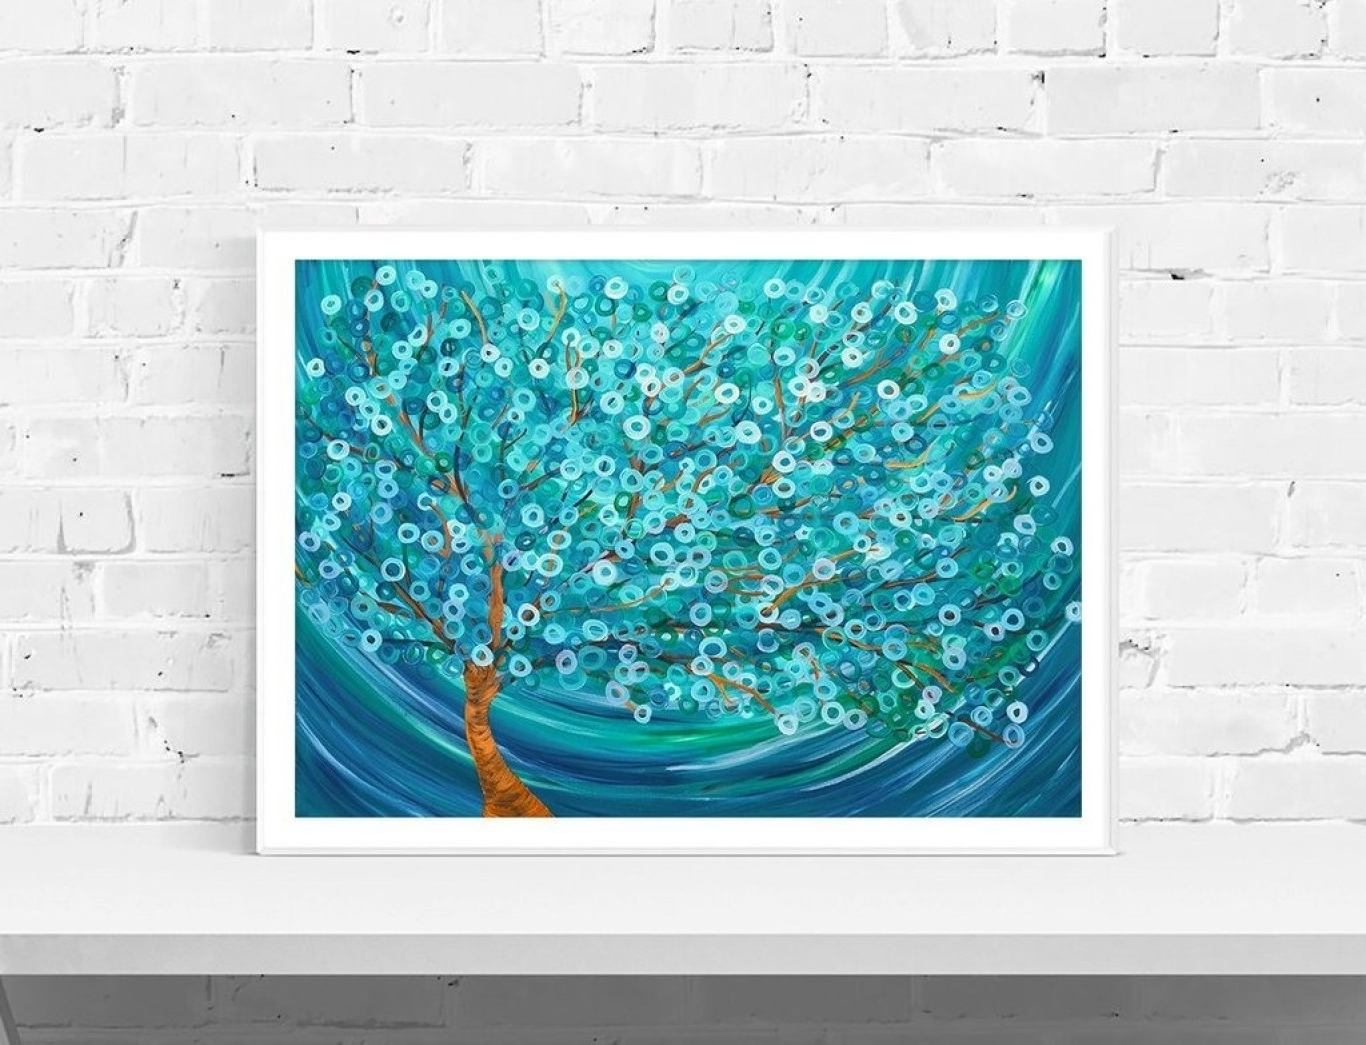 and artwork listing white art canvas navy il duzq blue decor large abstract print fullxfull painting wall